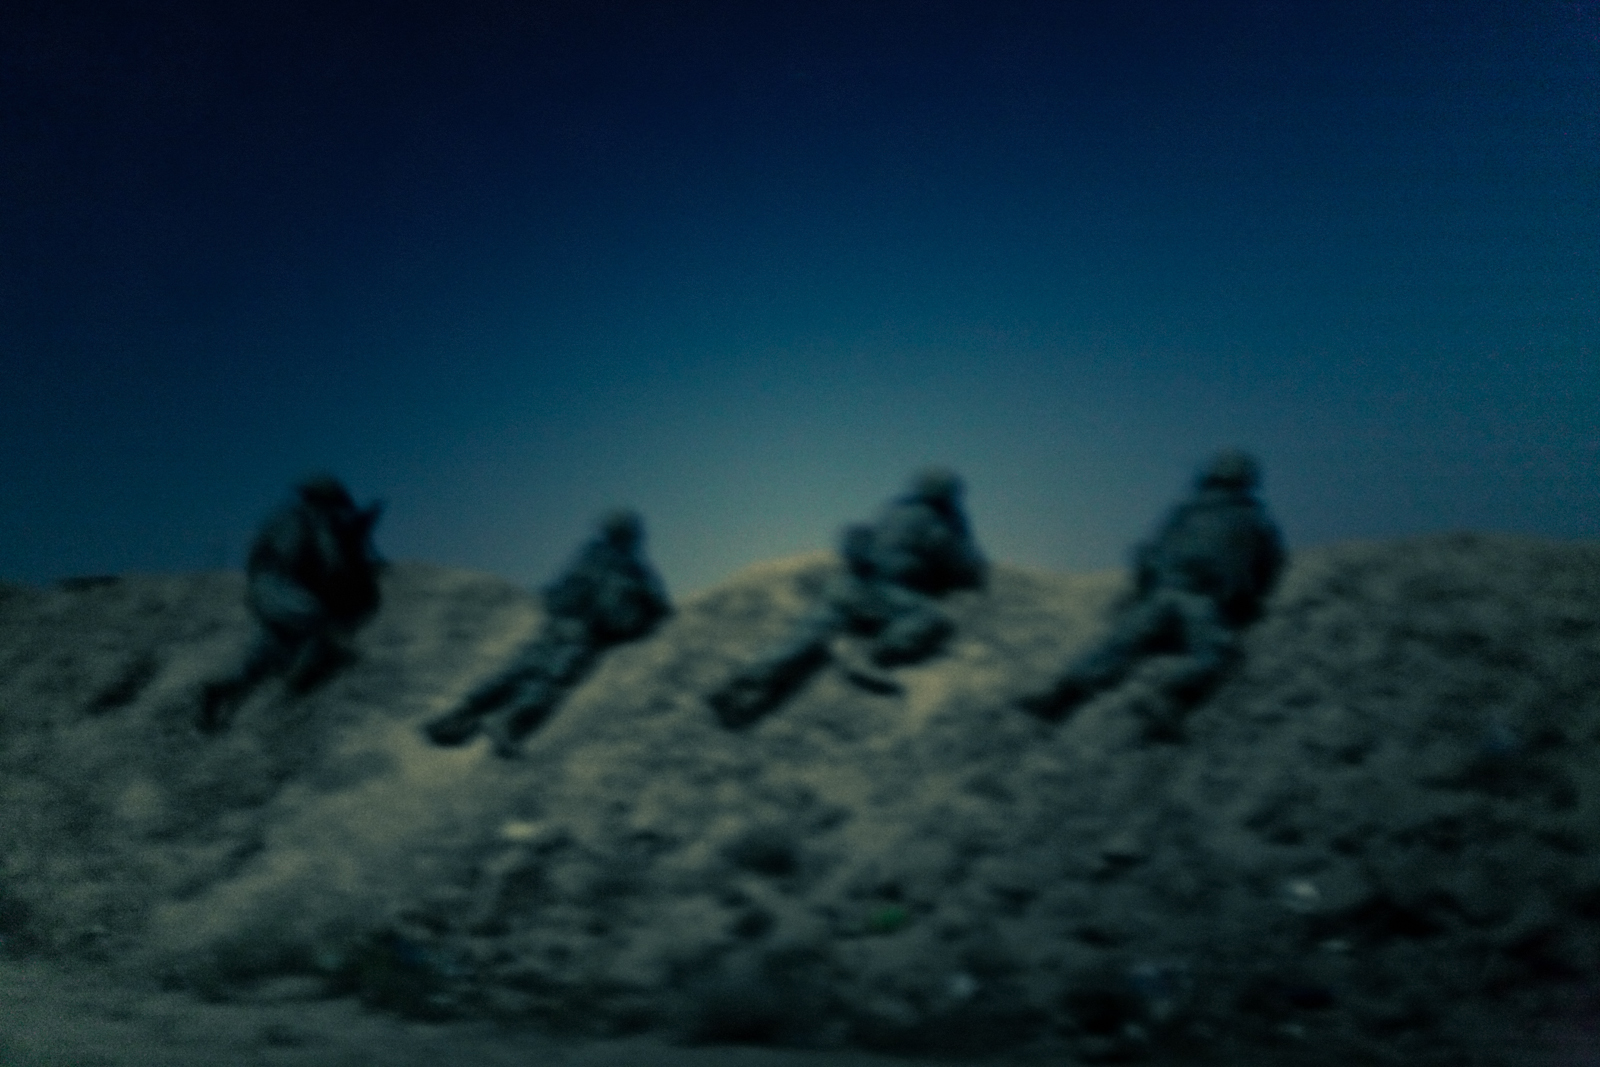 Soldiers from the 2nd Platoon 'Smash Platoon', 82nd Airborne Division, perform a target raid in Samarra, Salah ad Din province, Iraq, Sept, 28, 2007.